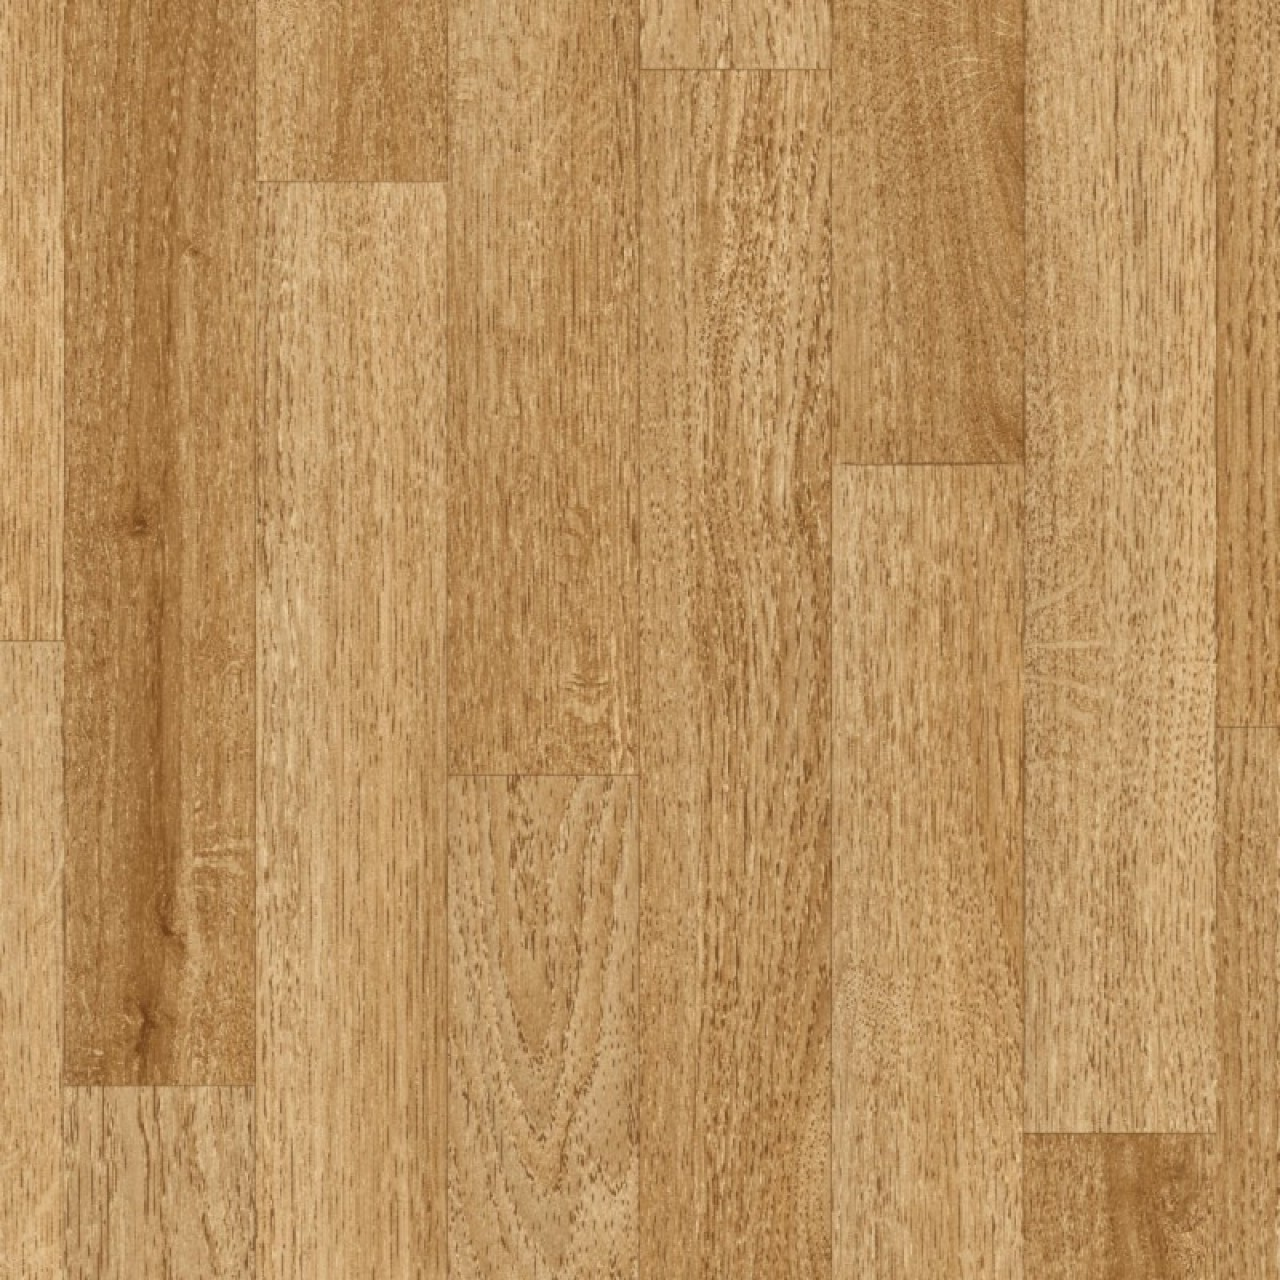 PVC Acczent classic 40 classical oak/natural - 5618008